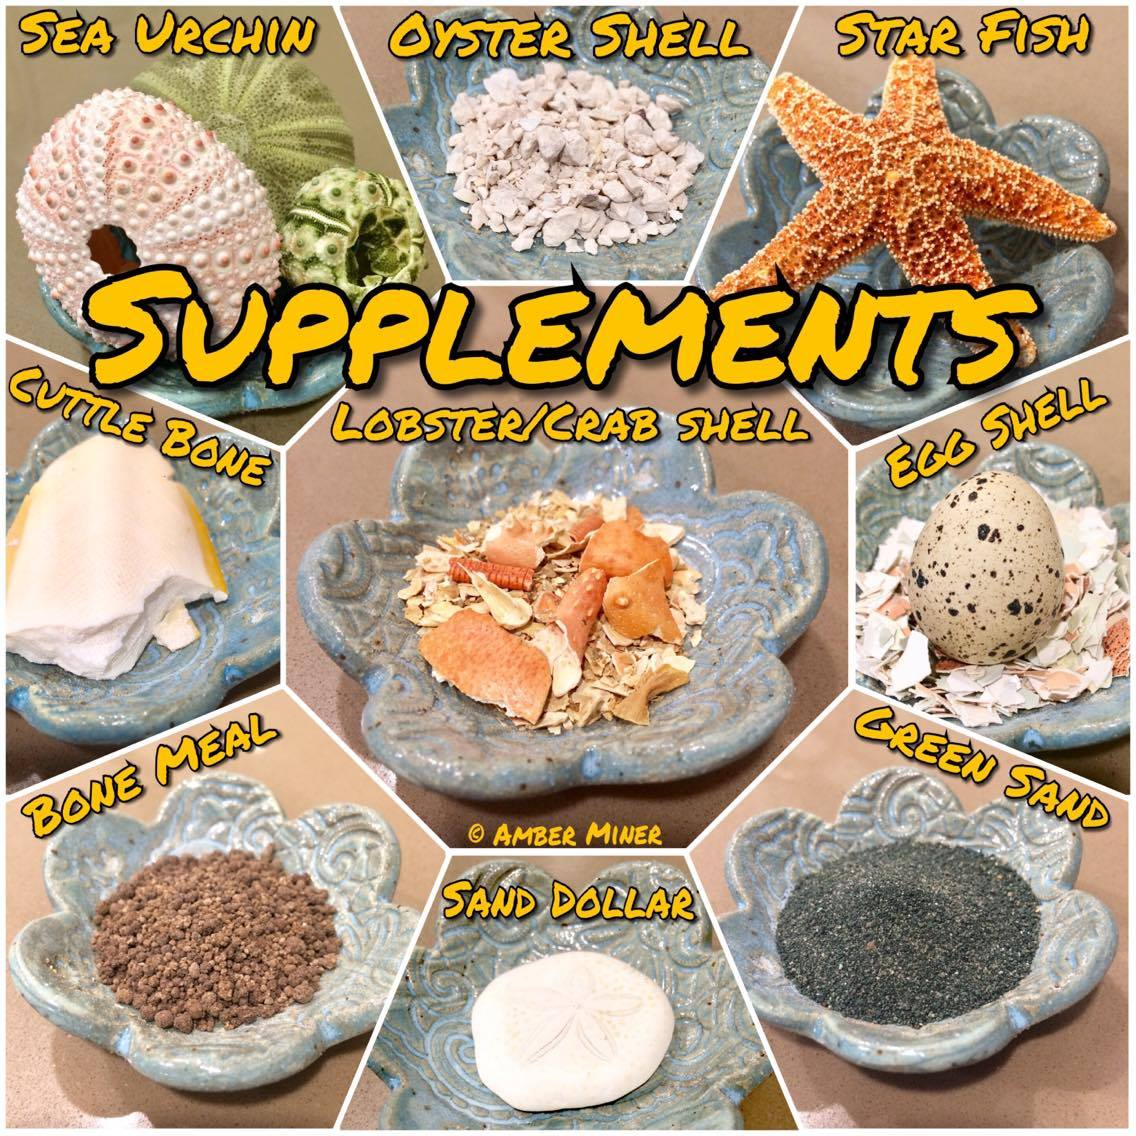 Supplements for hermit crabs